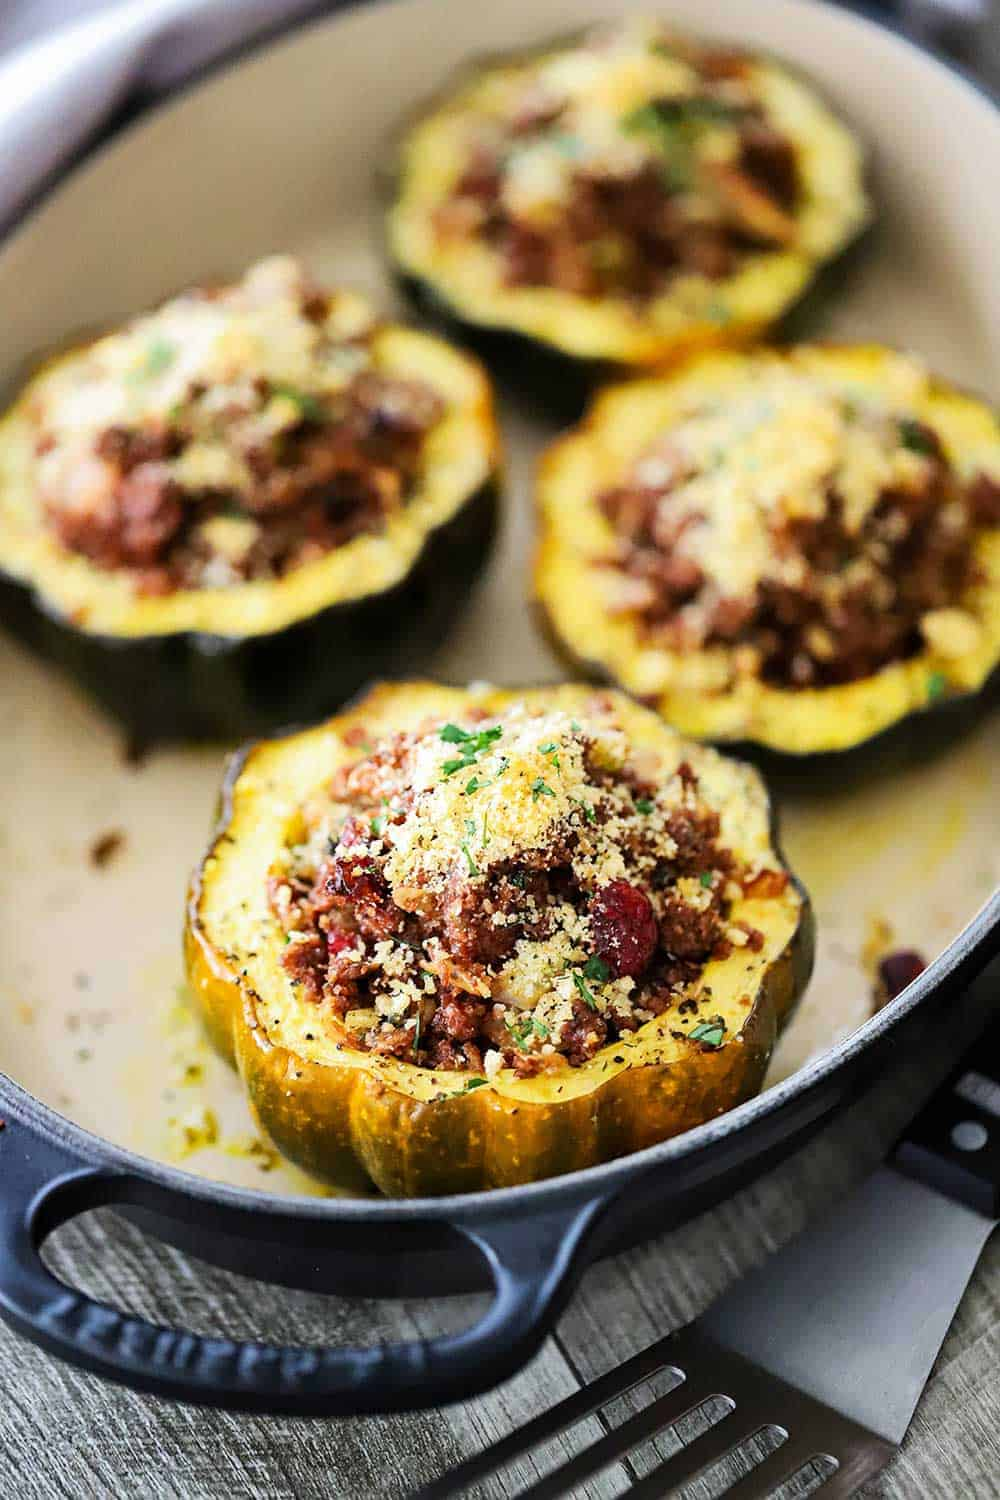 4 stuffed acorn squash filled with a vegetarian stuffing all in a oval baking dish.